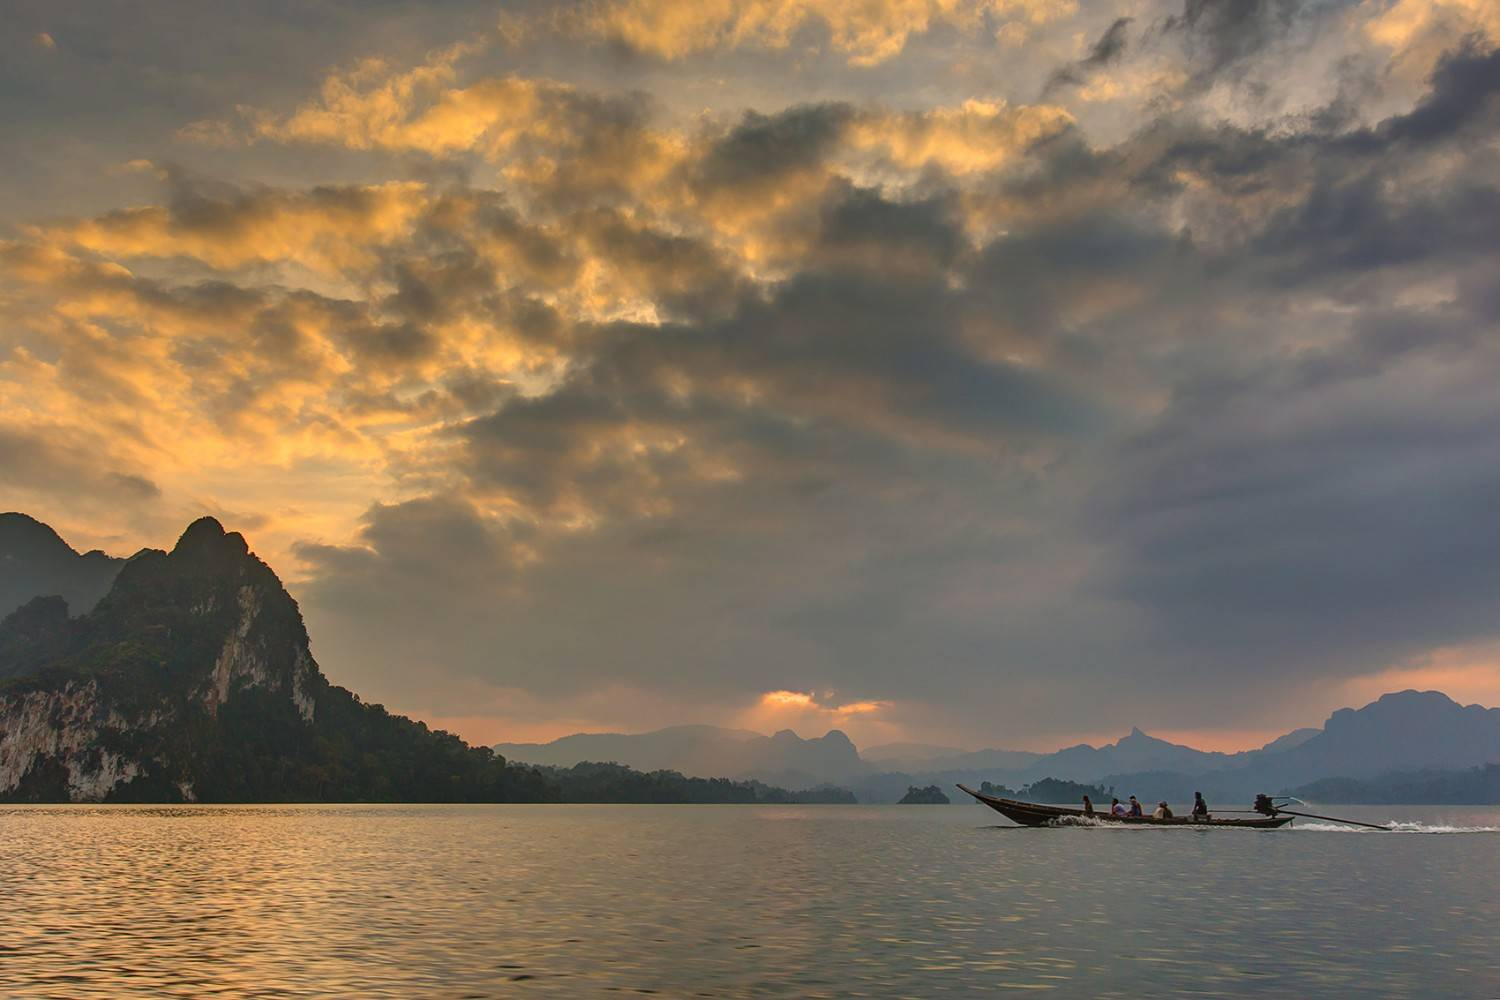 Sunset on Cheow Lan Lake